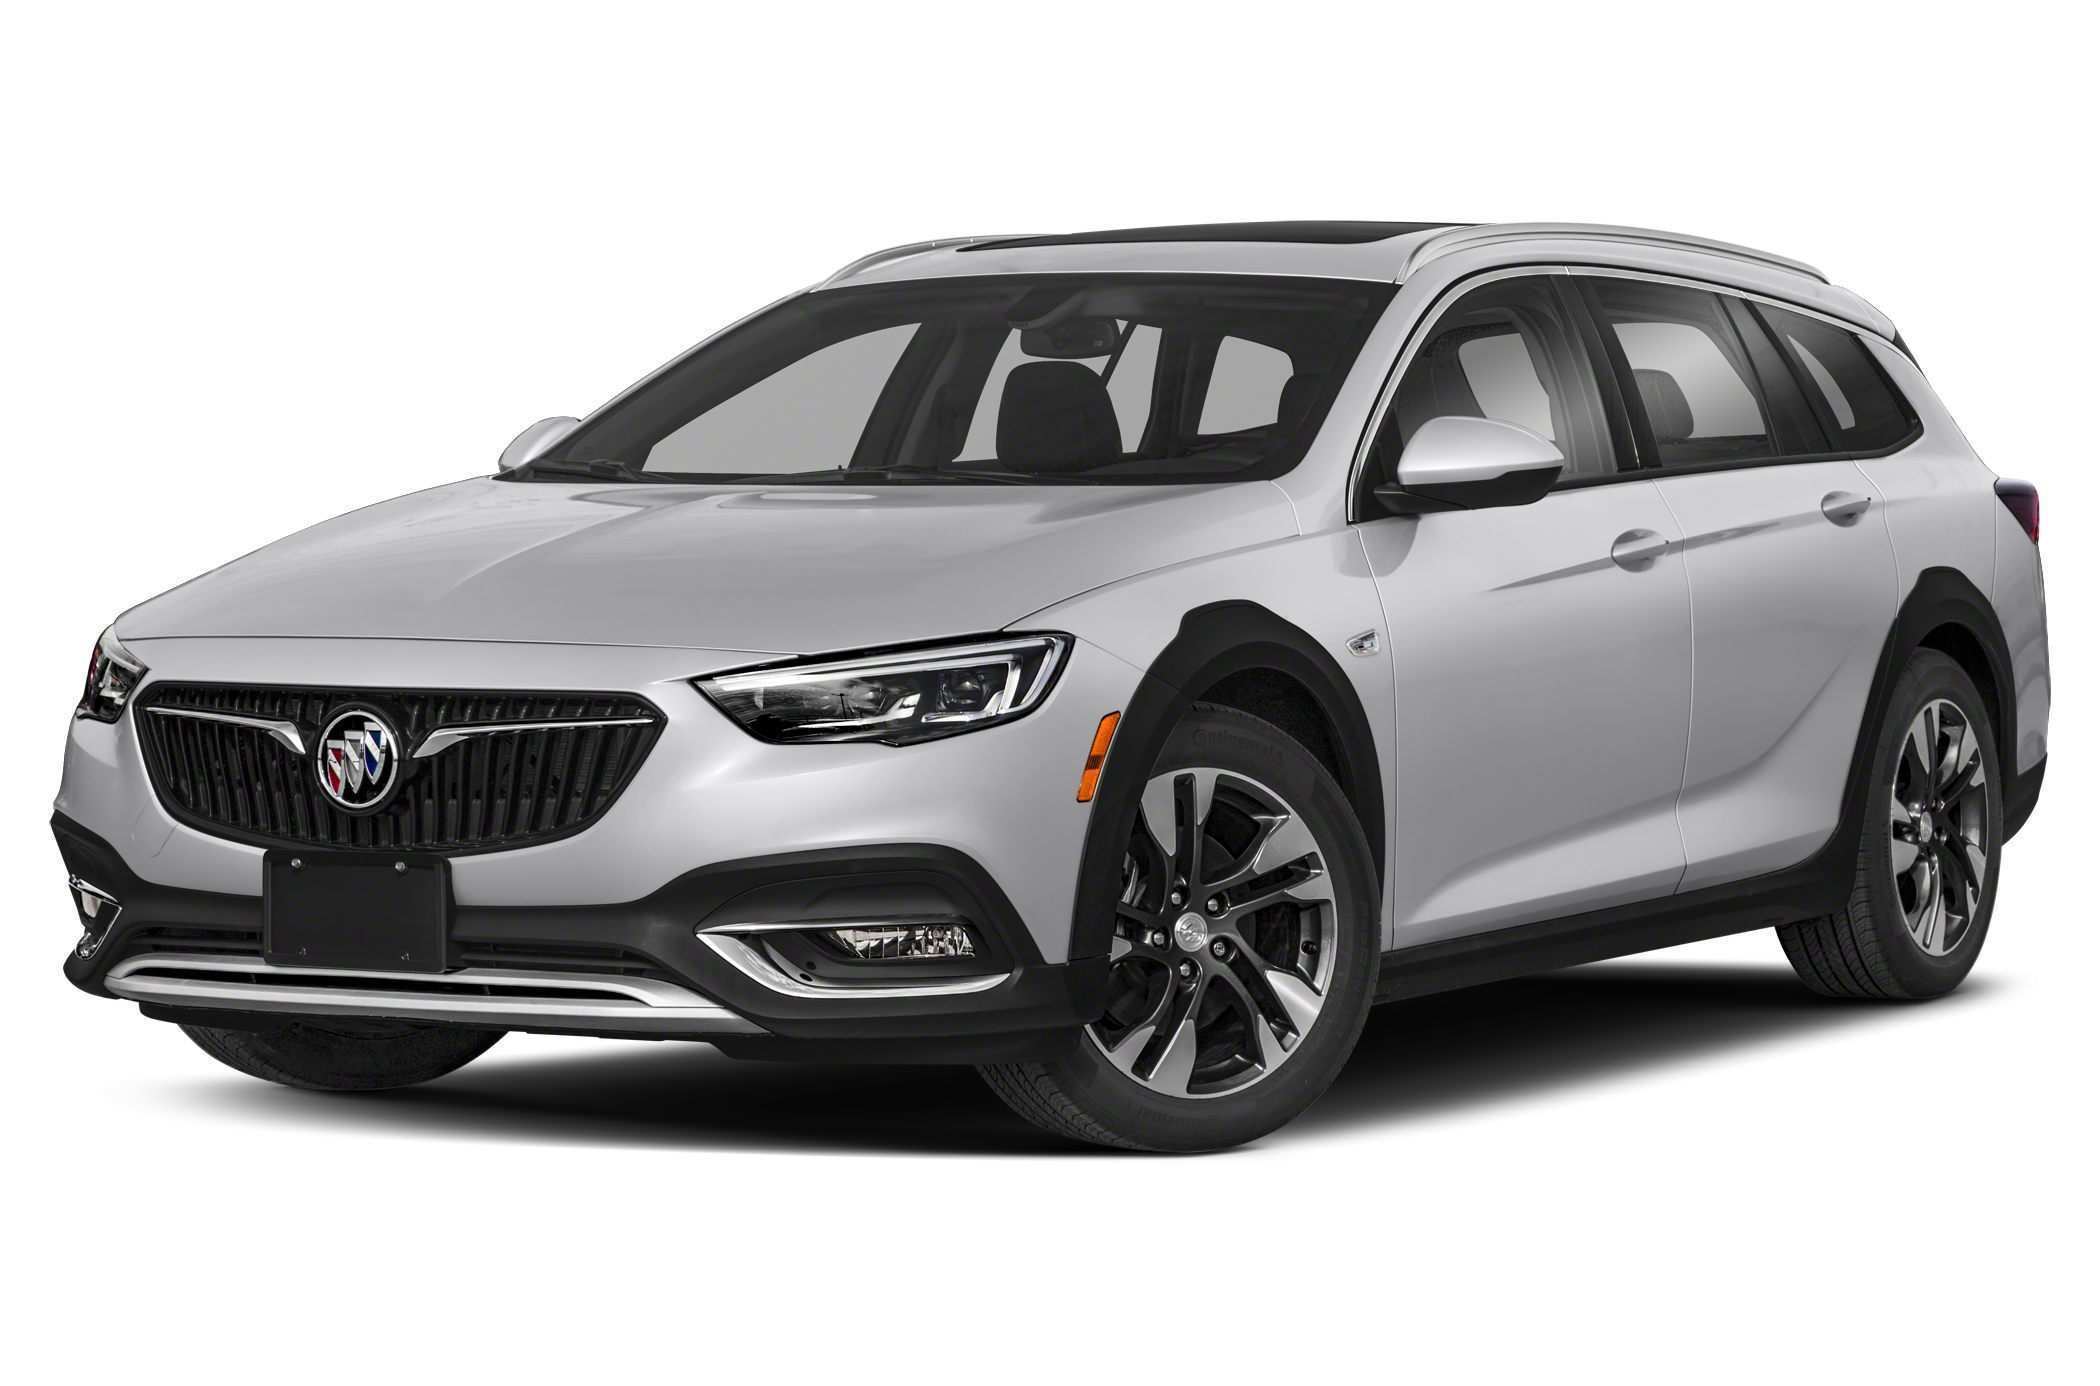 36 All New Best Buick 2019 Sedan Engine New Review by Best Buick 2019 Sedan Engine